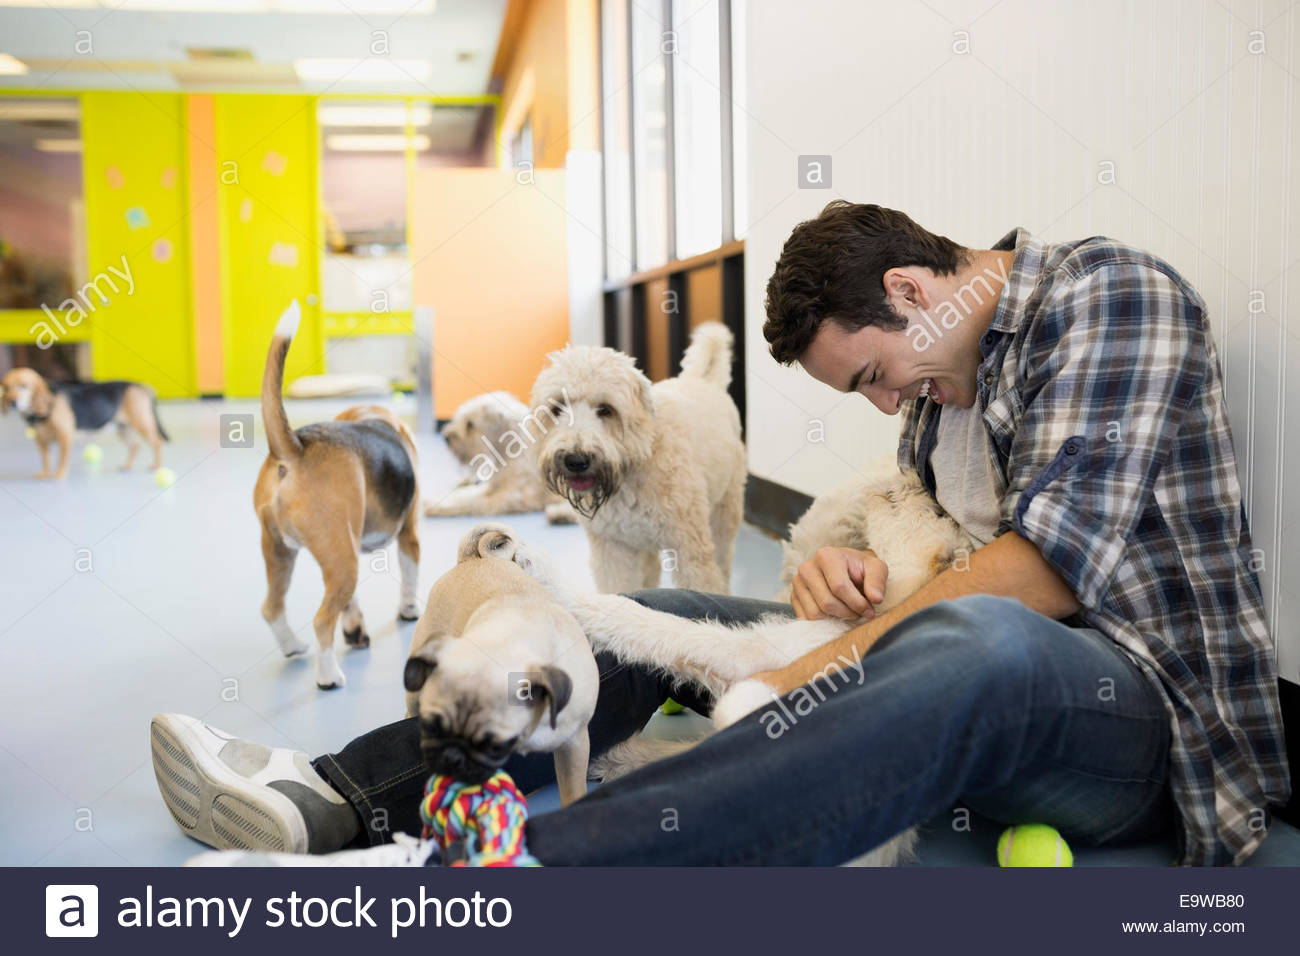 Man playing with dogs at dog daycare - Stock Image